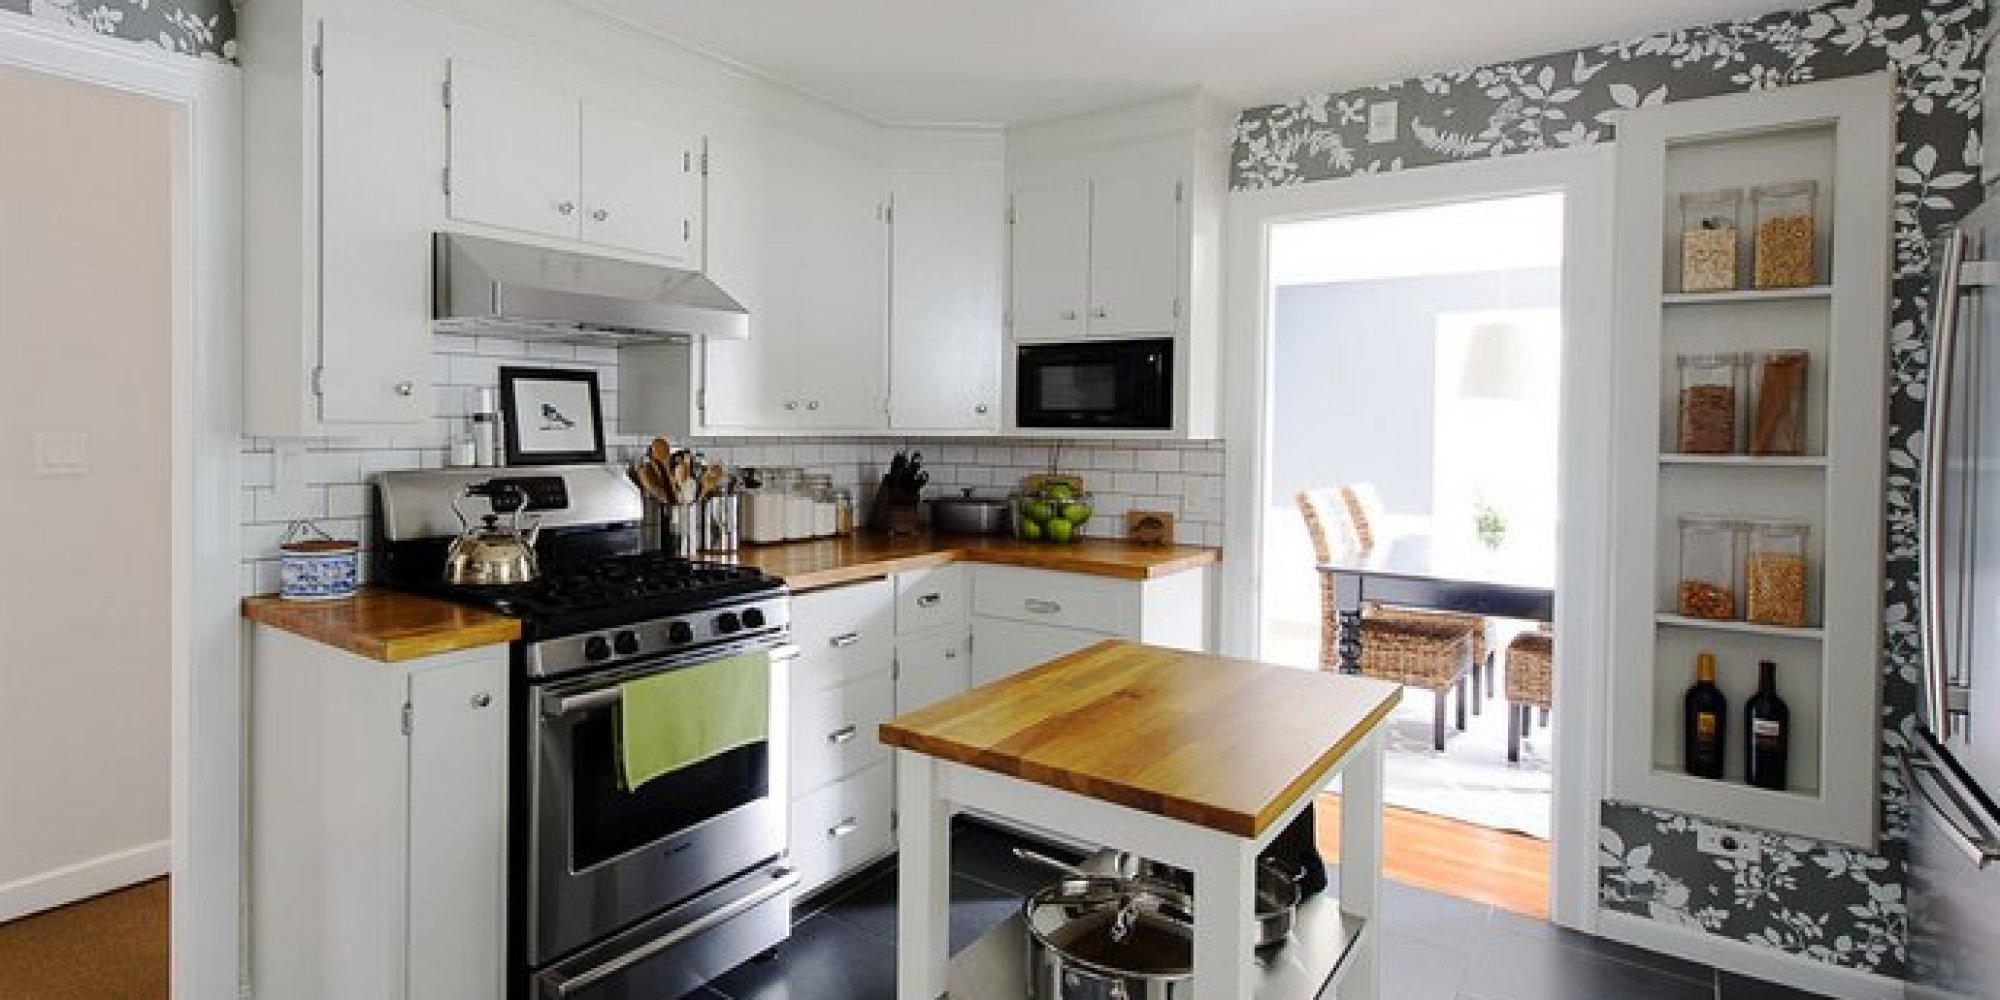 Updated Kitchen 19 Inexpensive Ways To Fix Up Your Kitchen Photos Huffpost